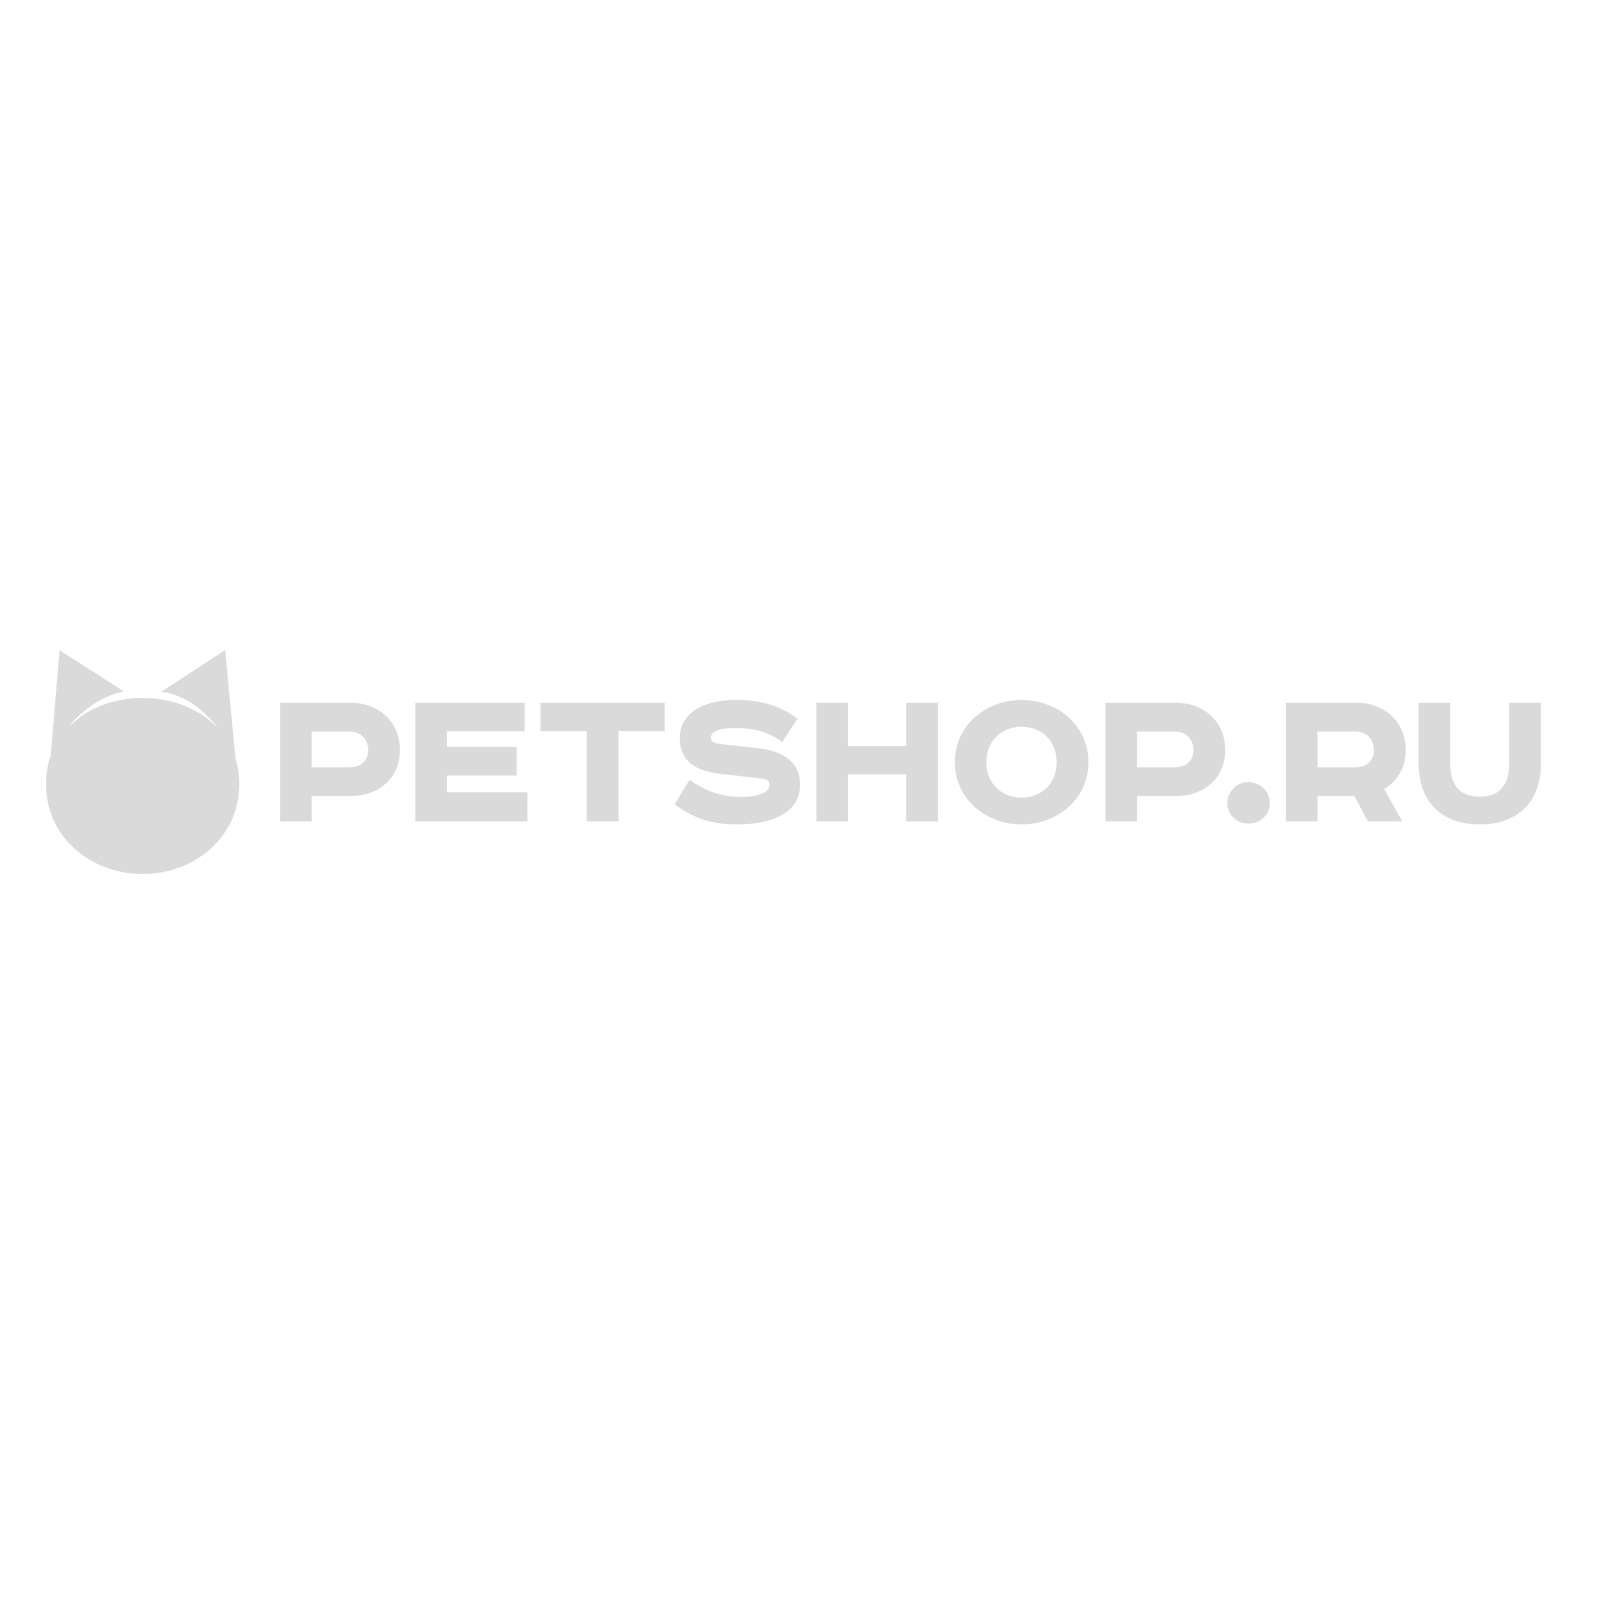 "Papillon Дразнилка ""Удочка с мышкой"" 40 + 5см (Cat toy fishing rod  with mouse natural) 240010 23344.уц УЦЕНКА"